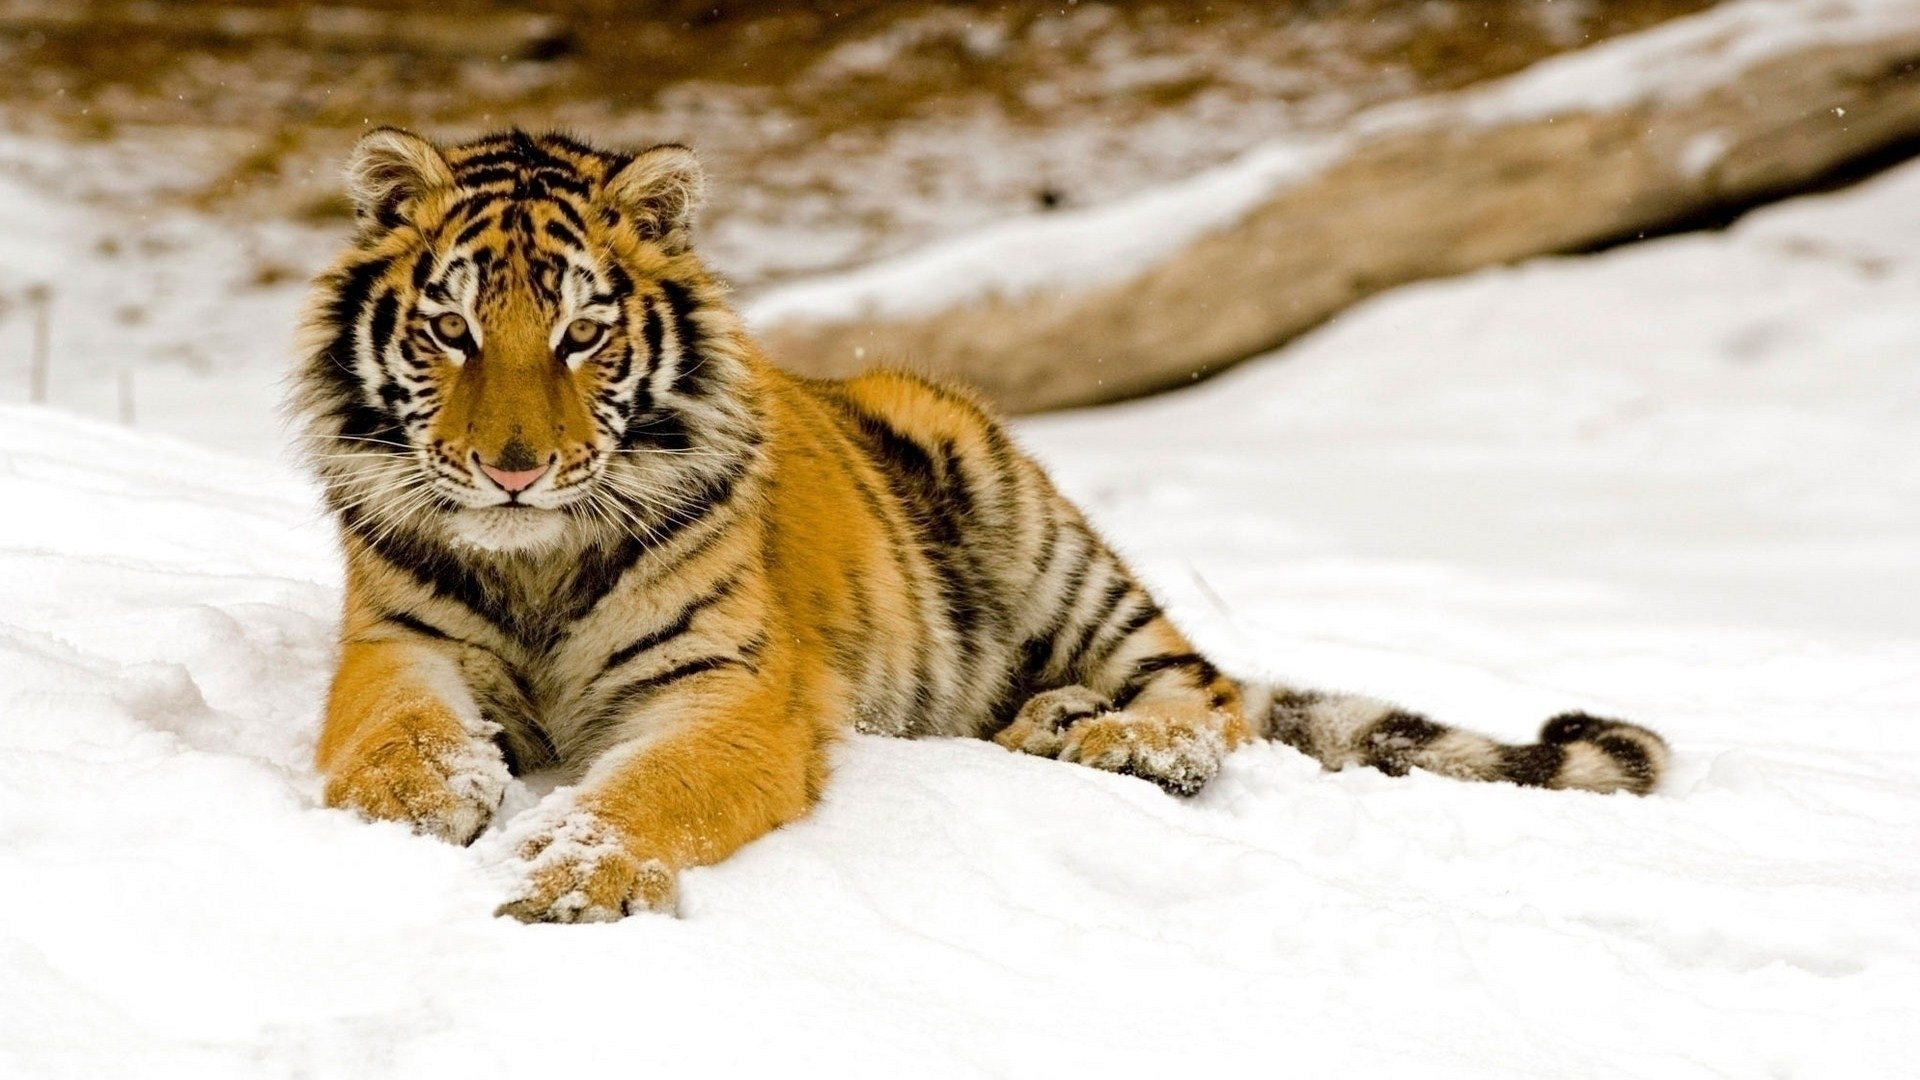 High resolution Tiger hd 1080p wallpaper ID:115595 for computer